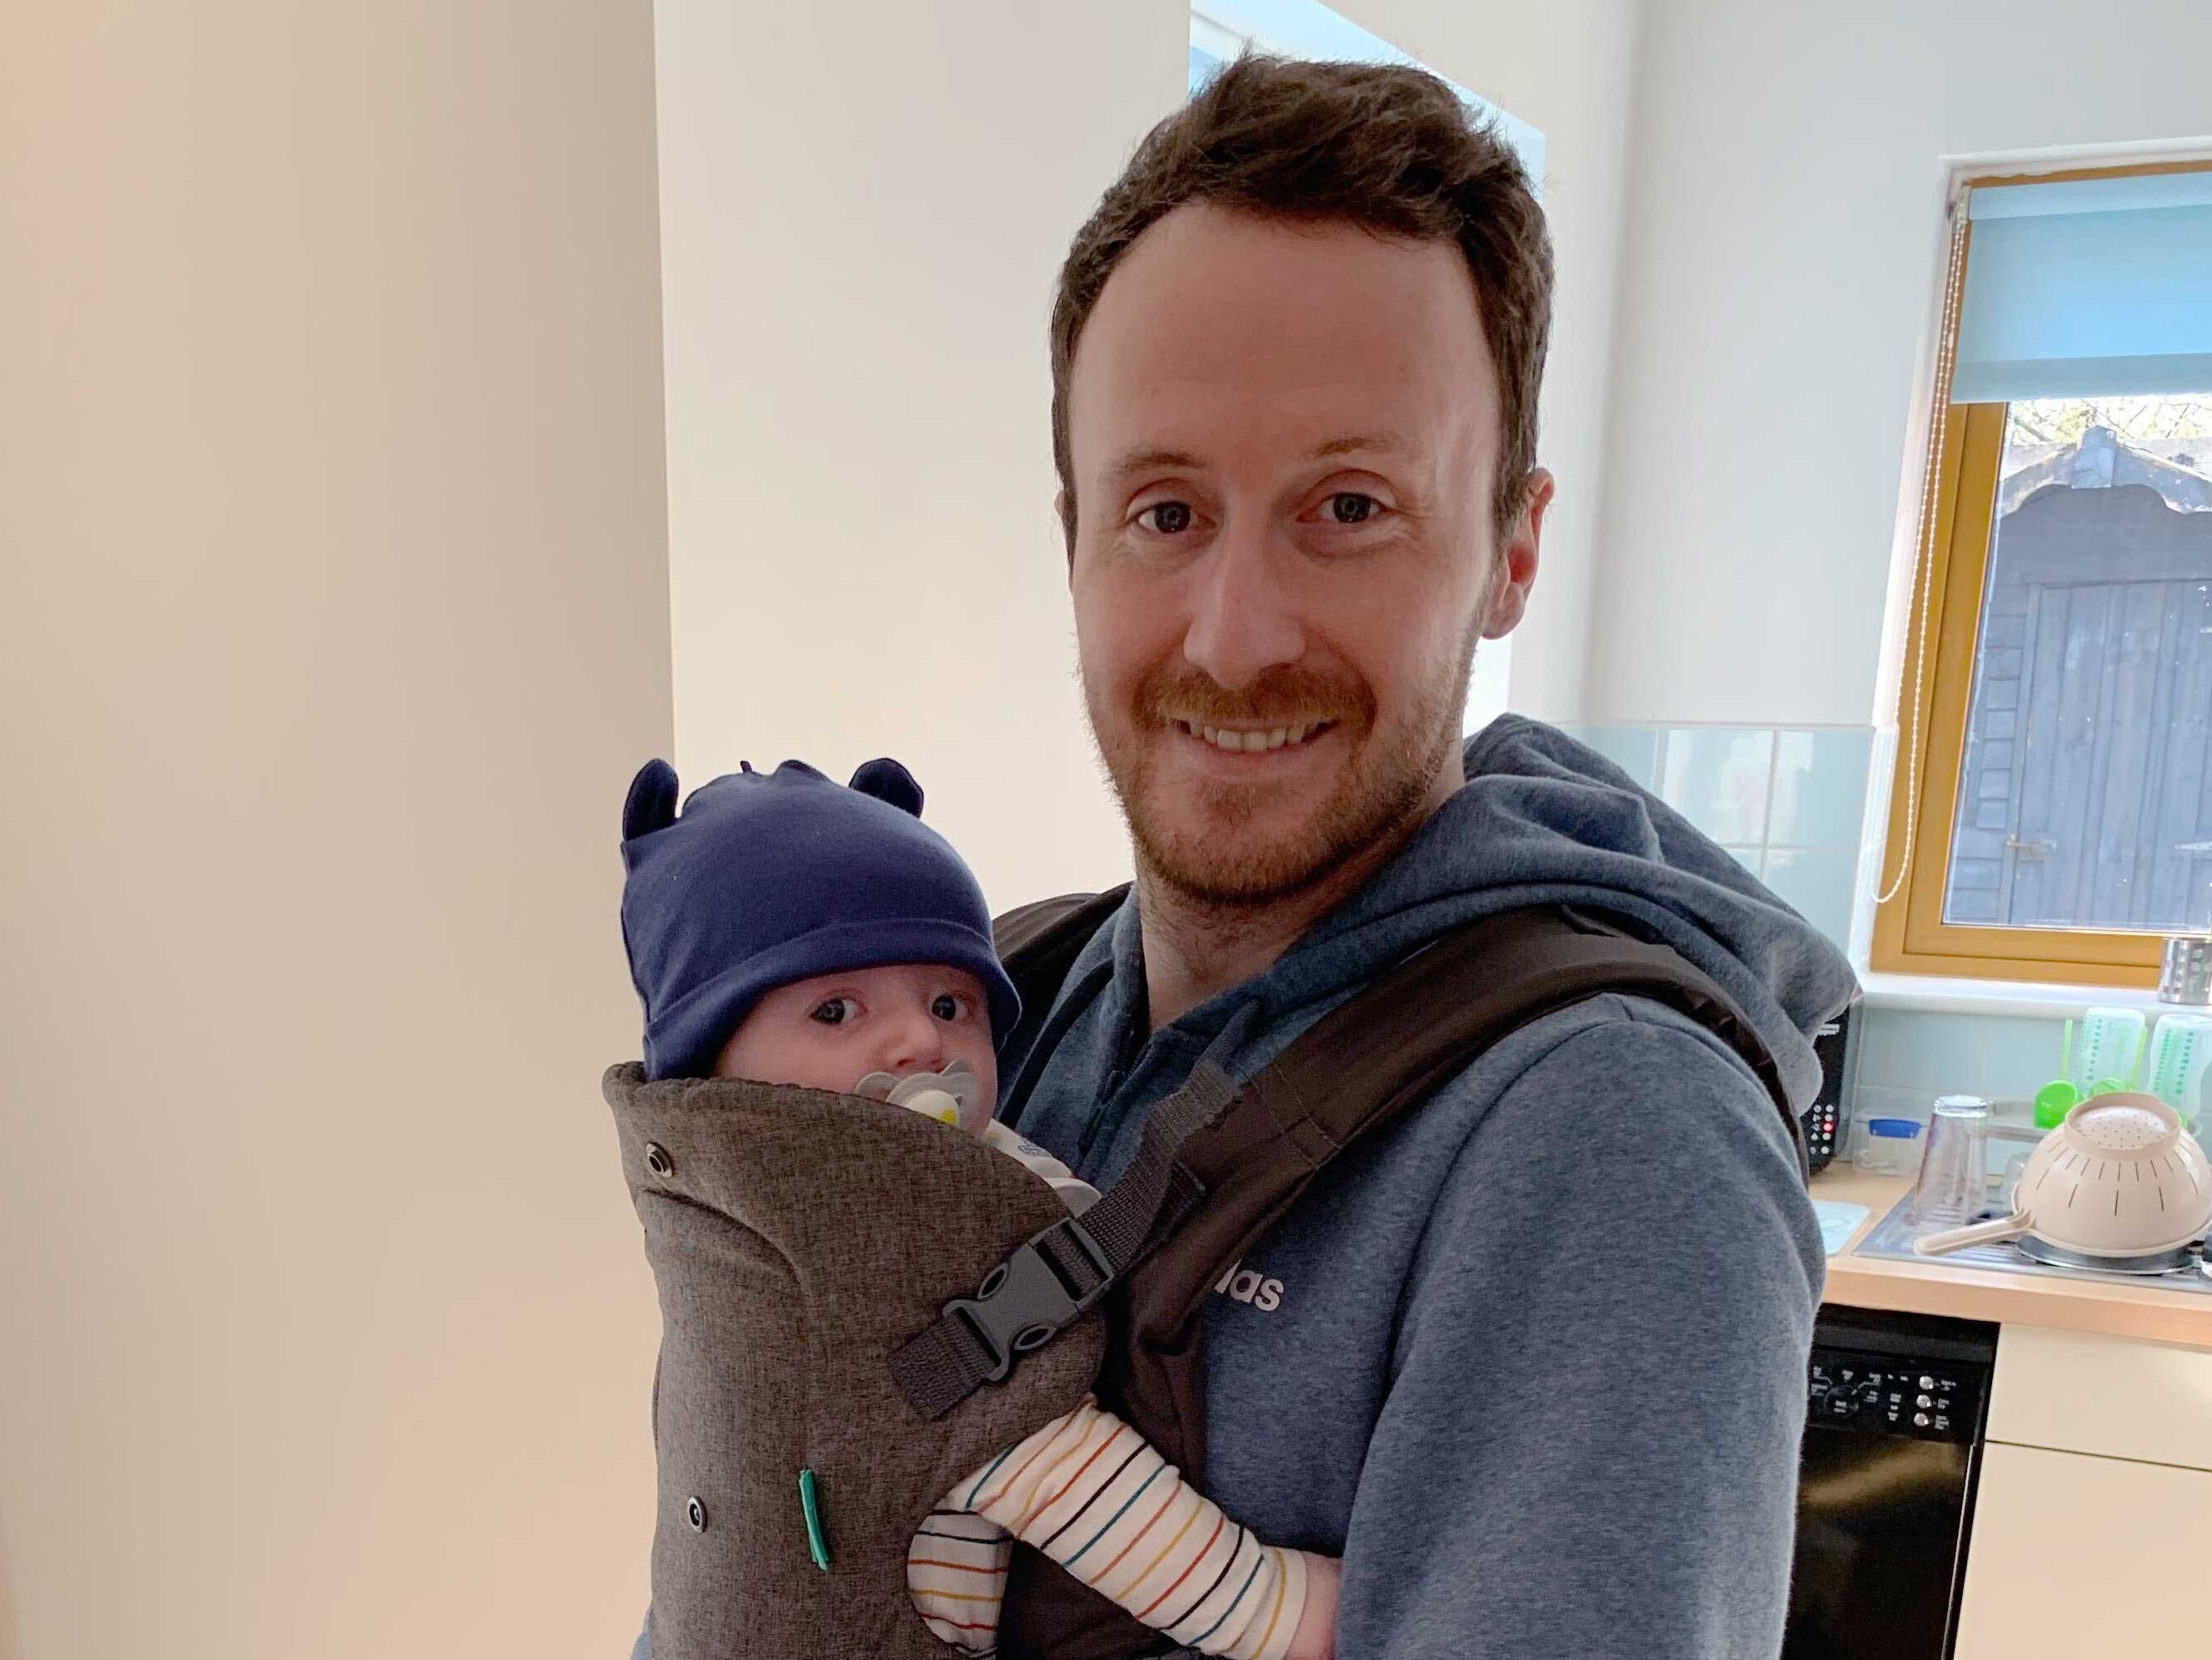 Andy with his newborn son, Matthew.